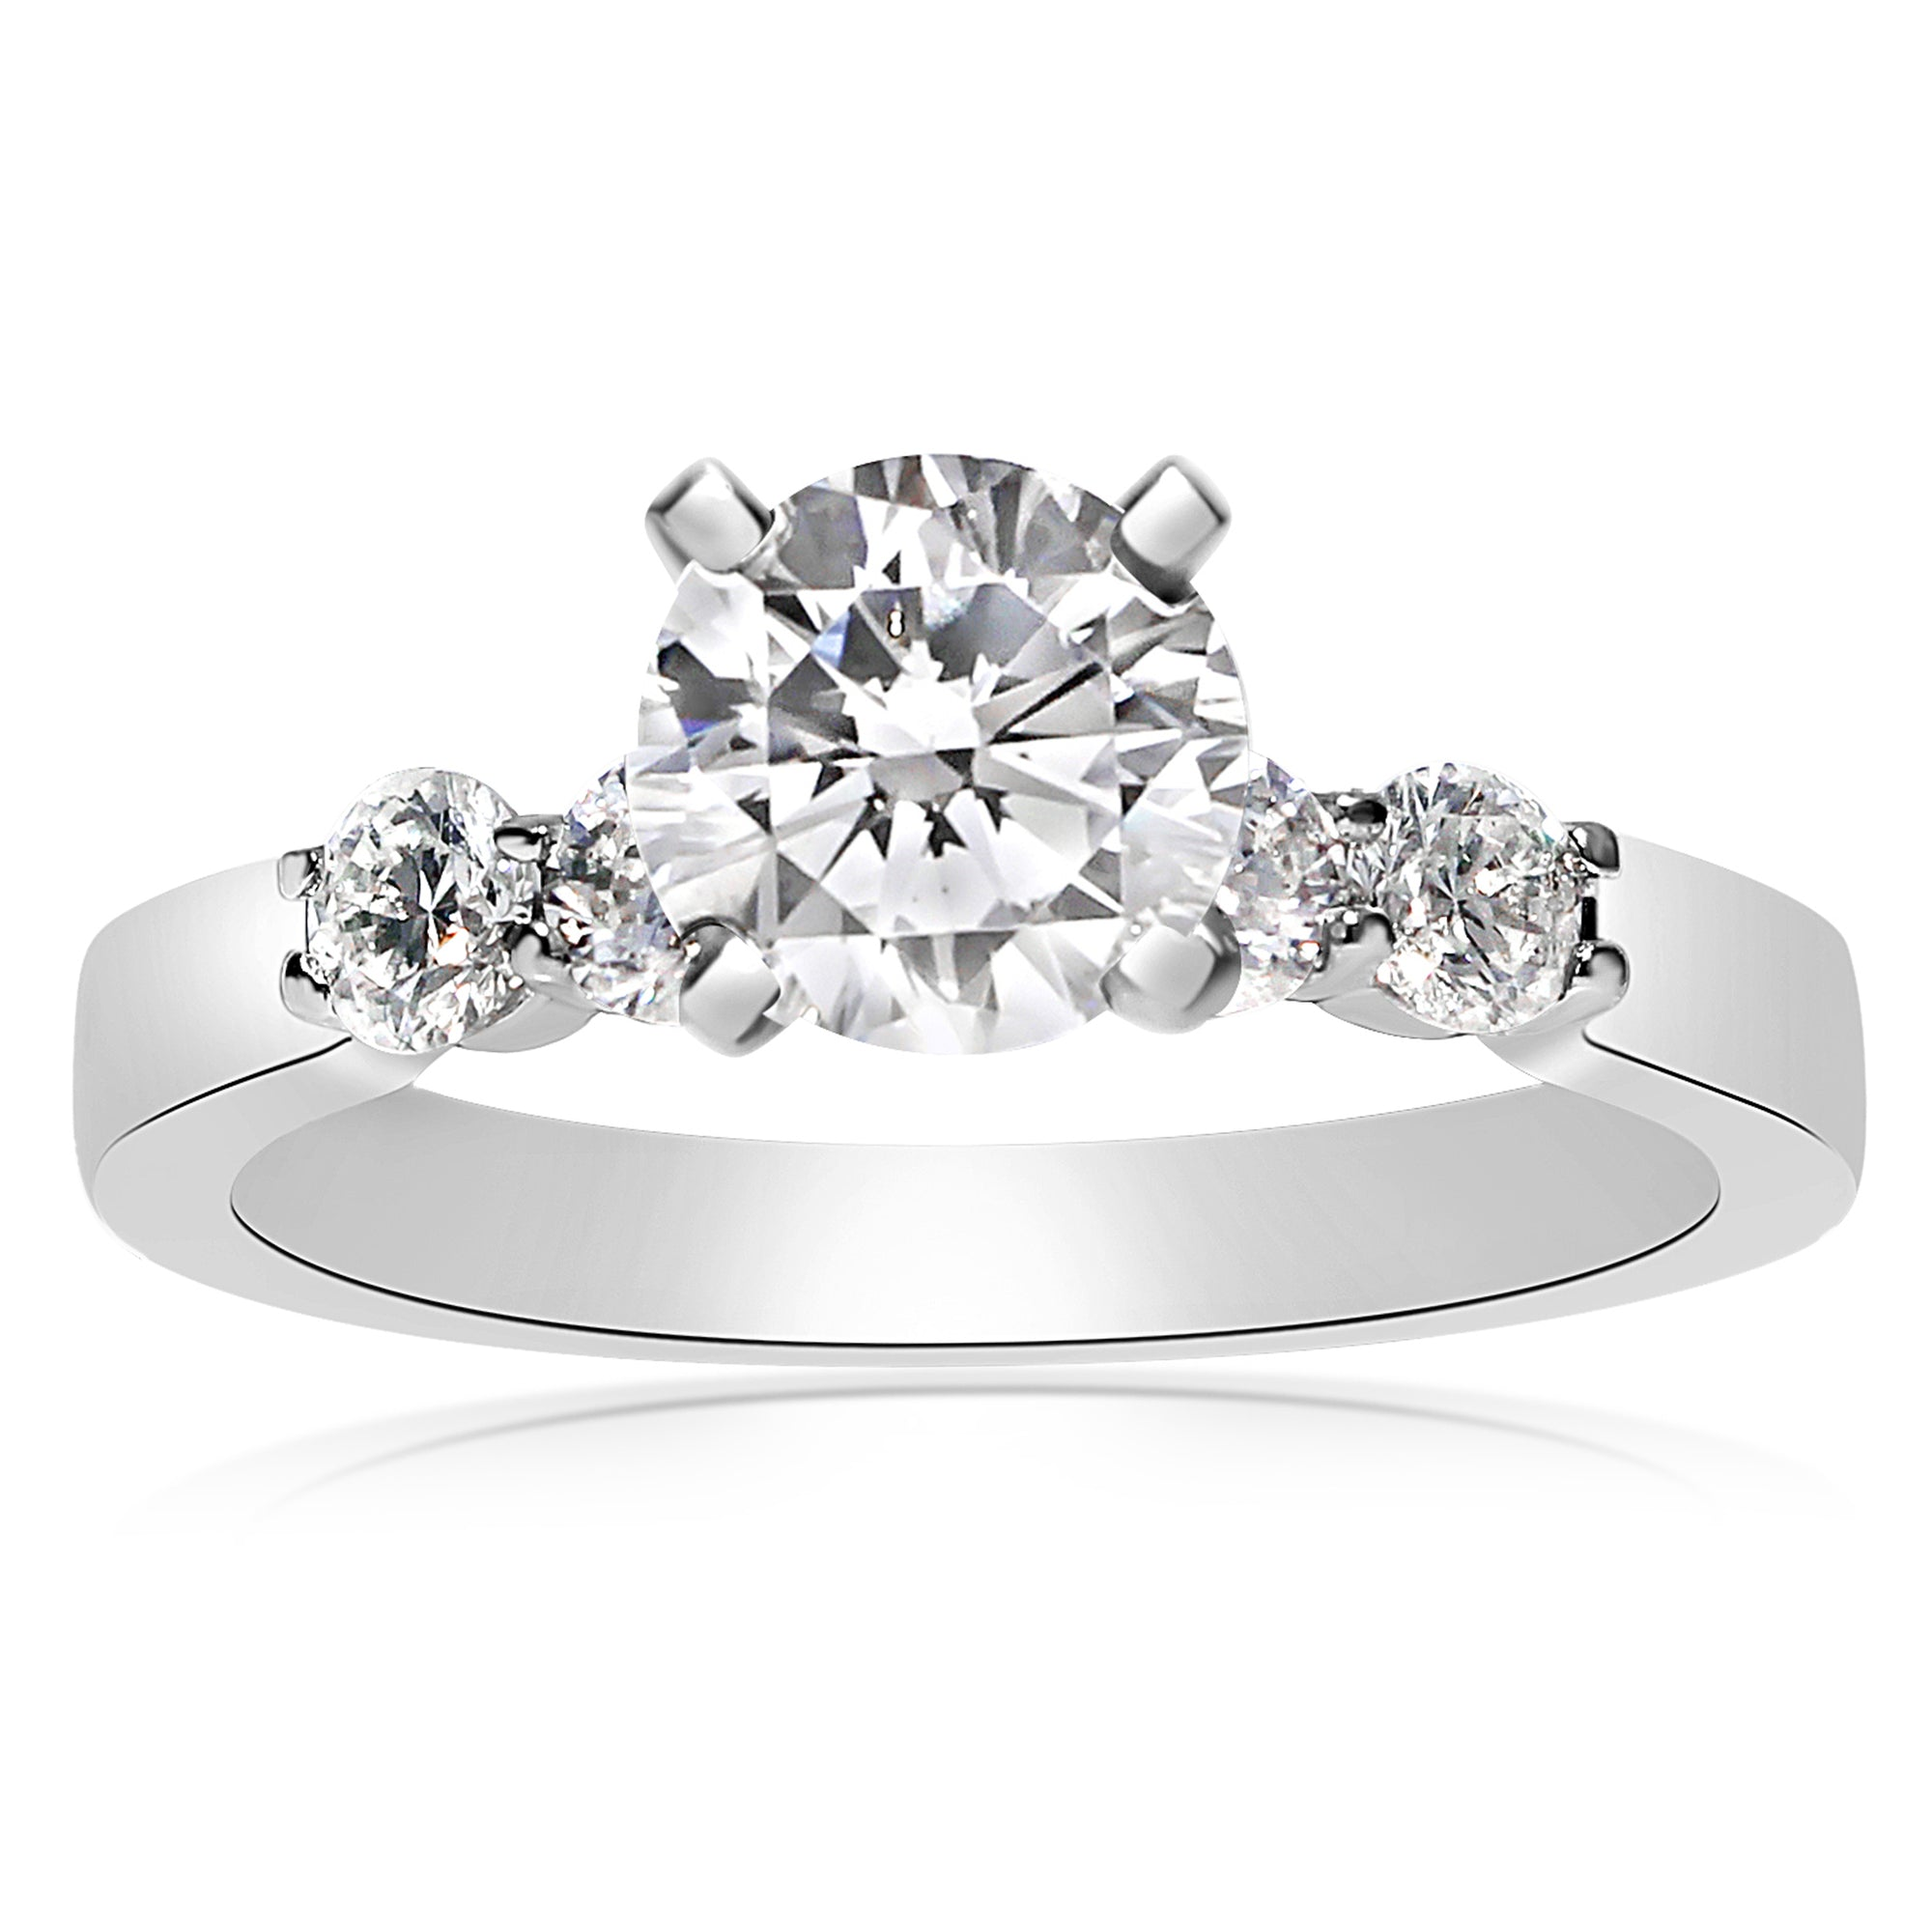 diamond set engagement setting graduated rings designer shared ring tkfusdt prong